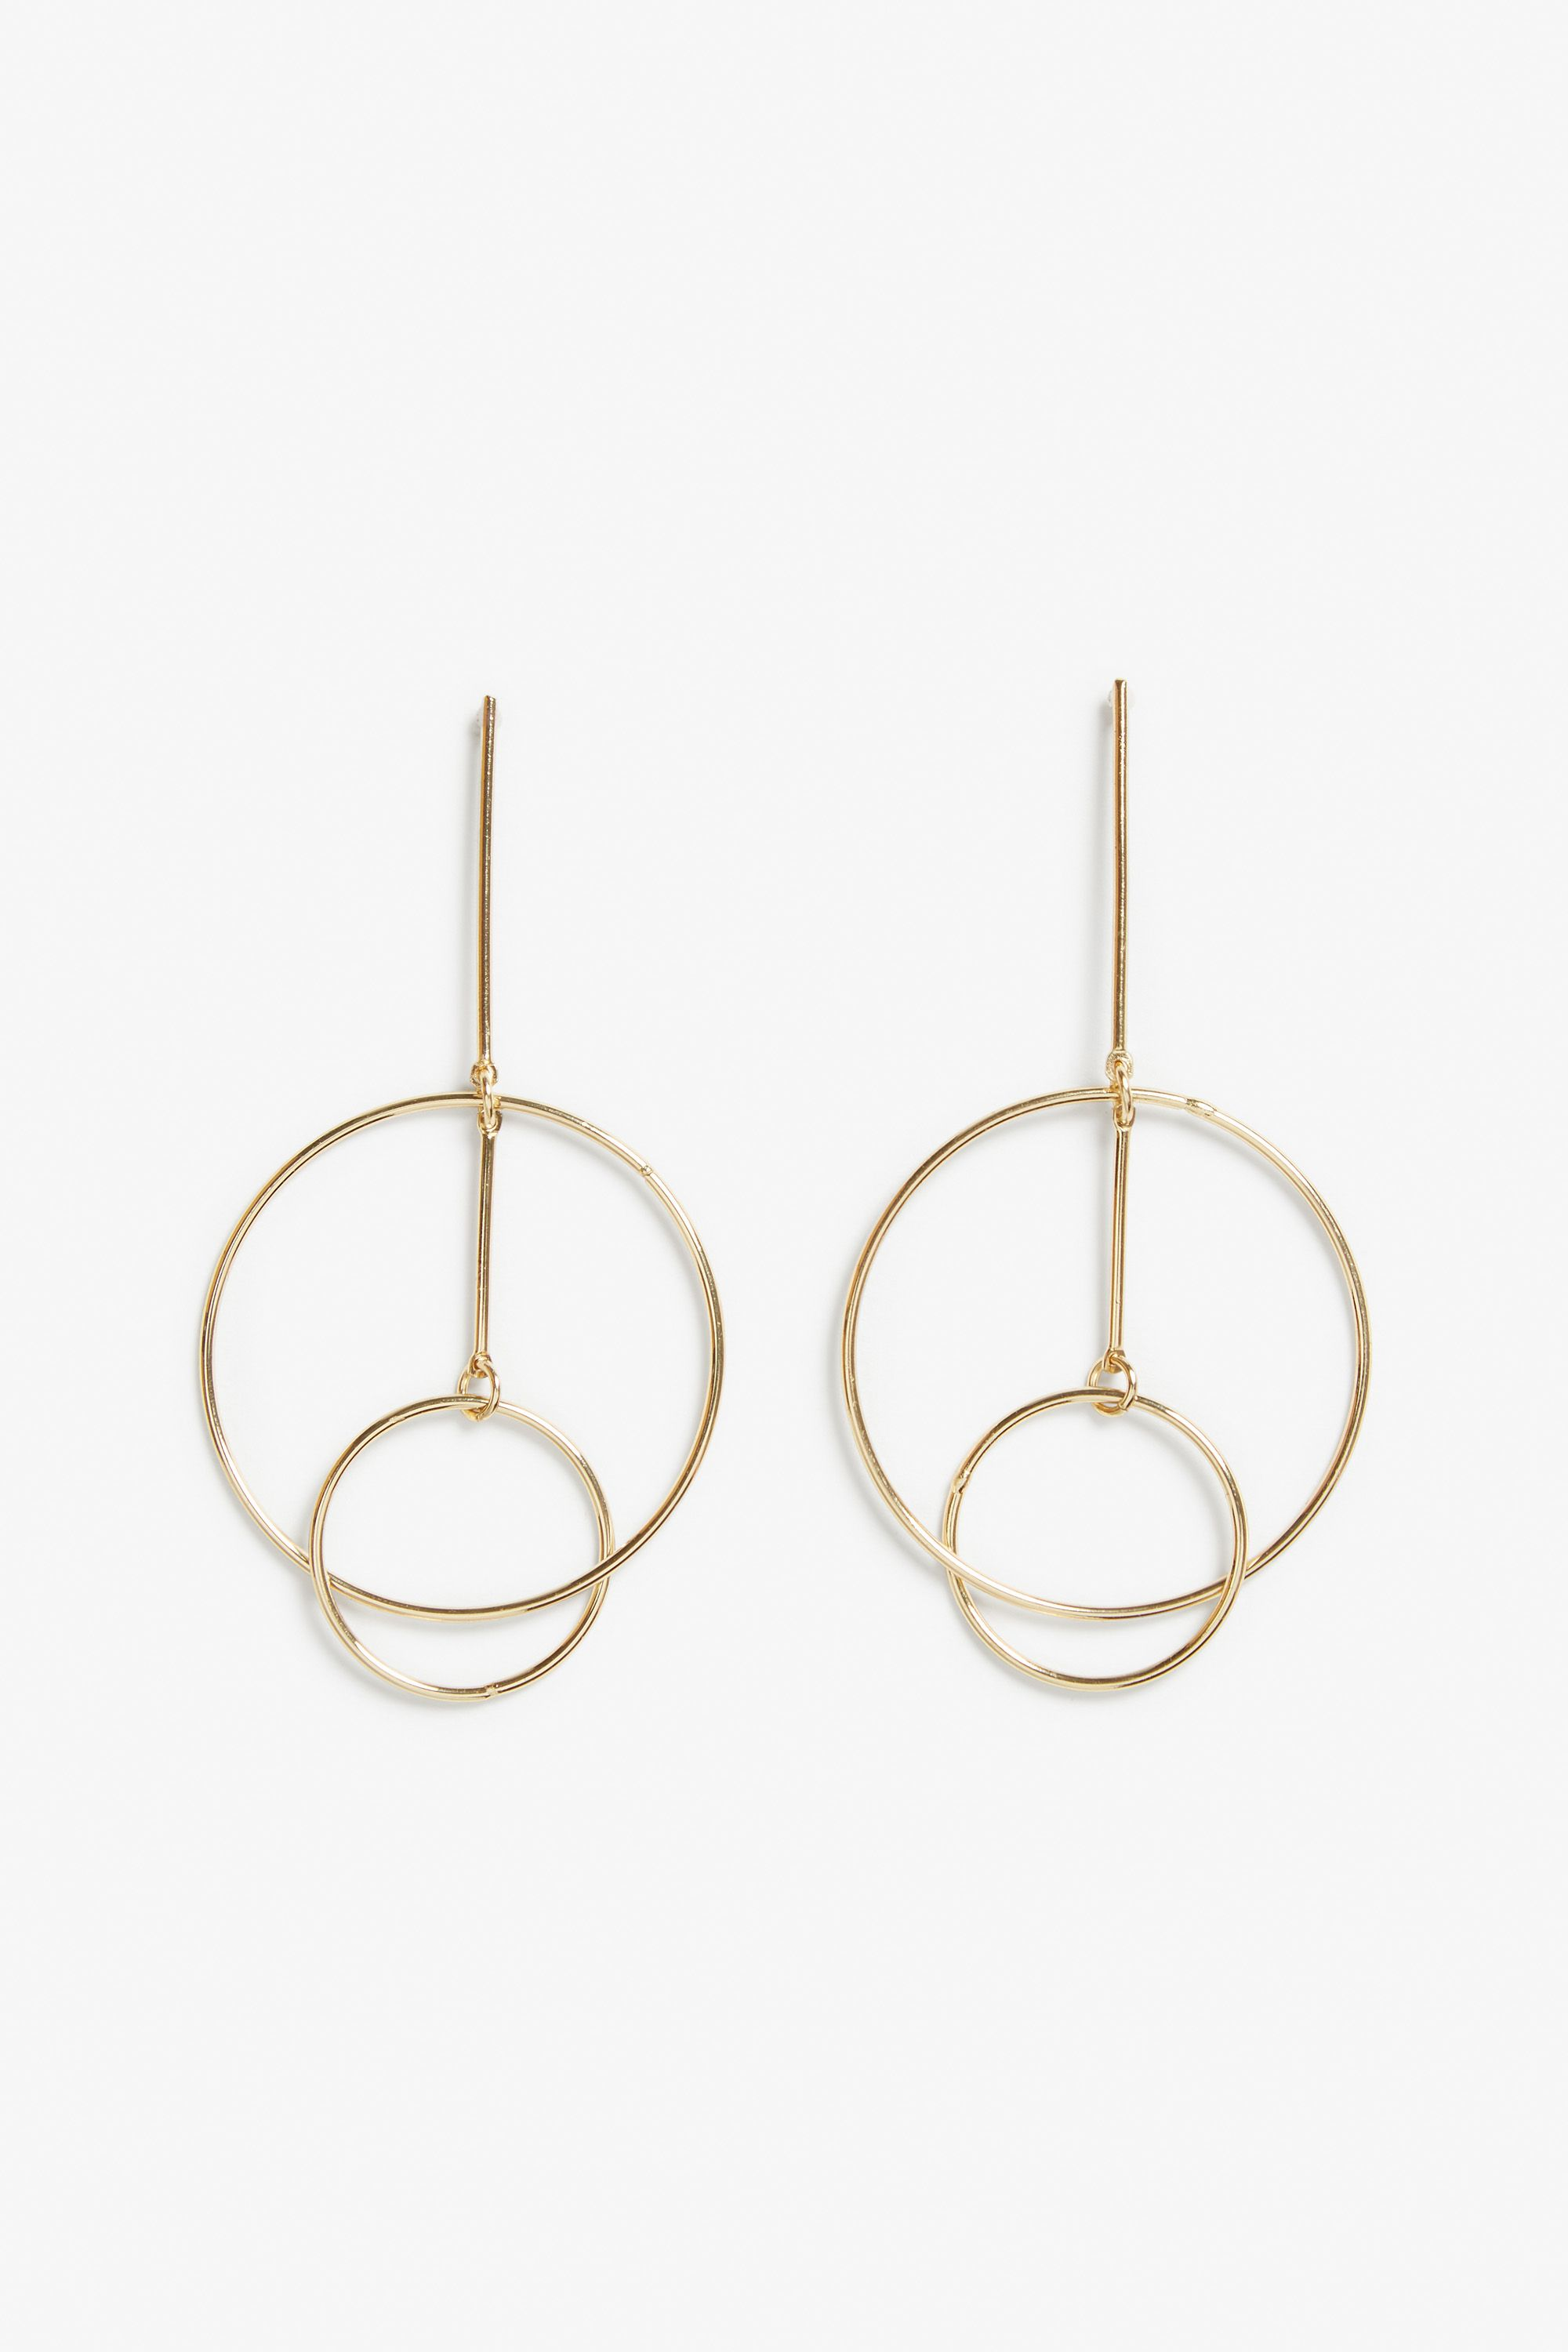 Interconnected gold hoop earrings